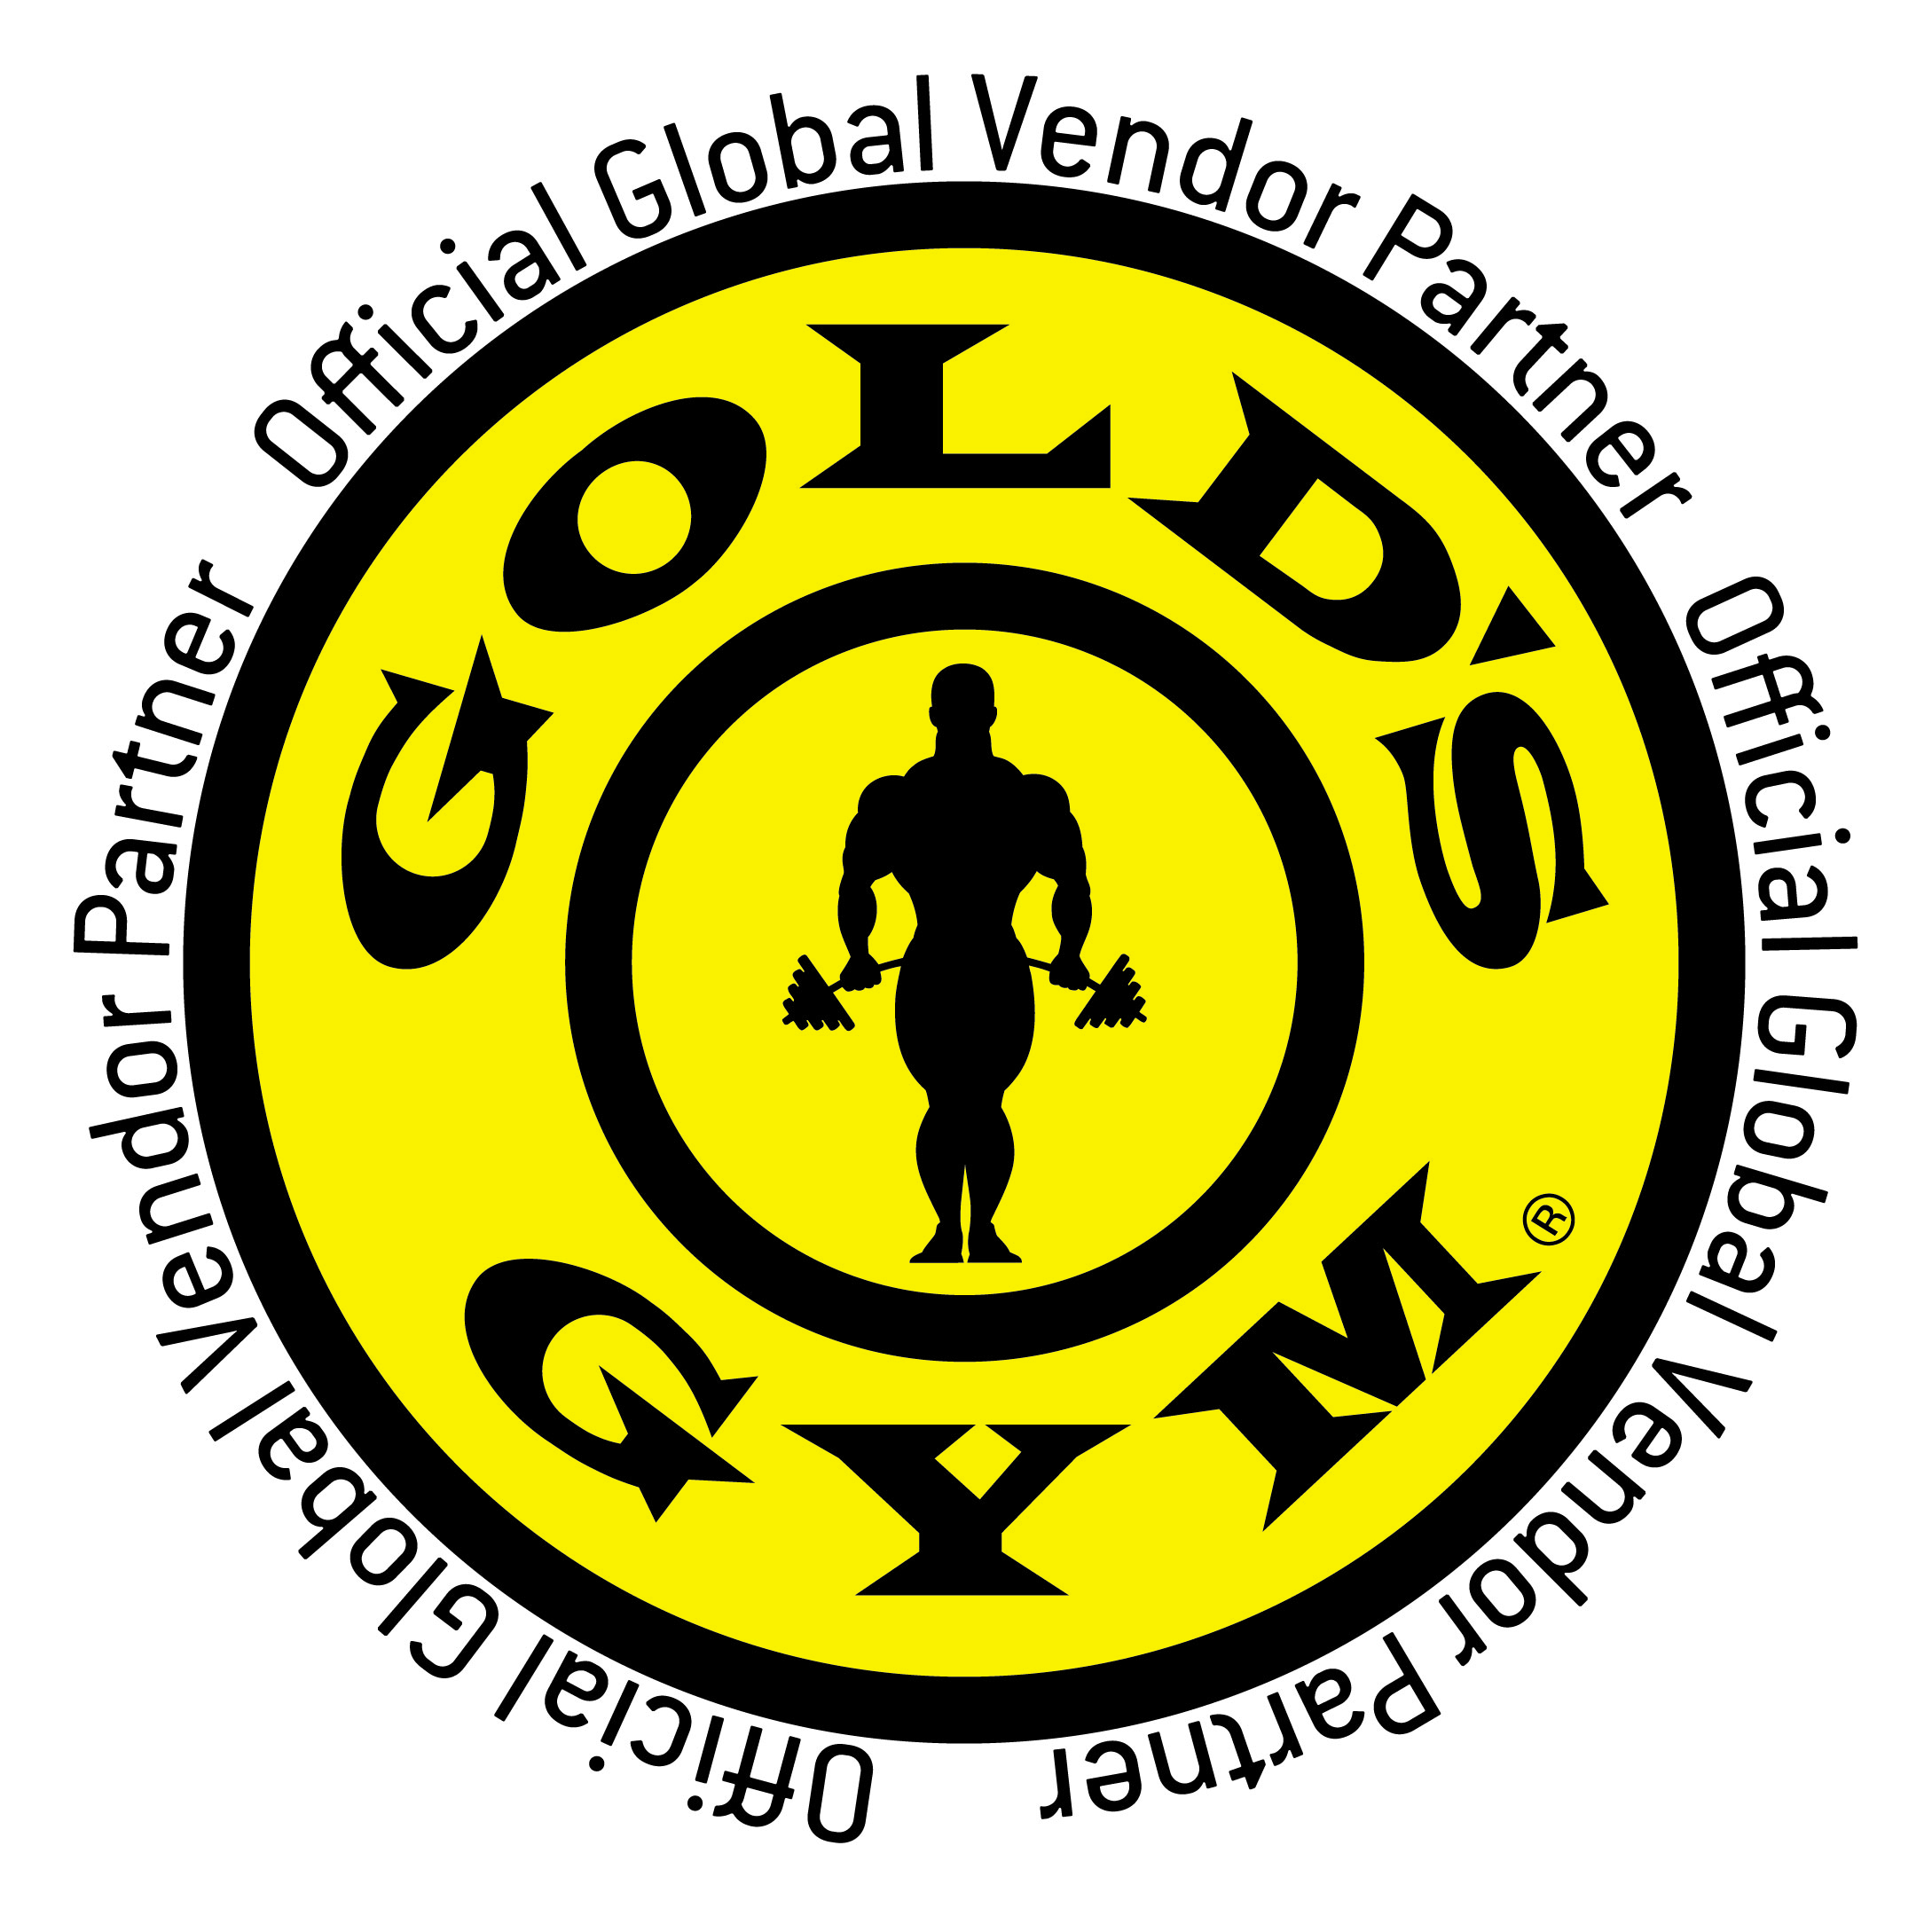 Official Global Vendor Program Partner Since 1991